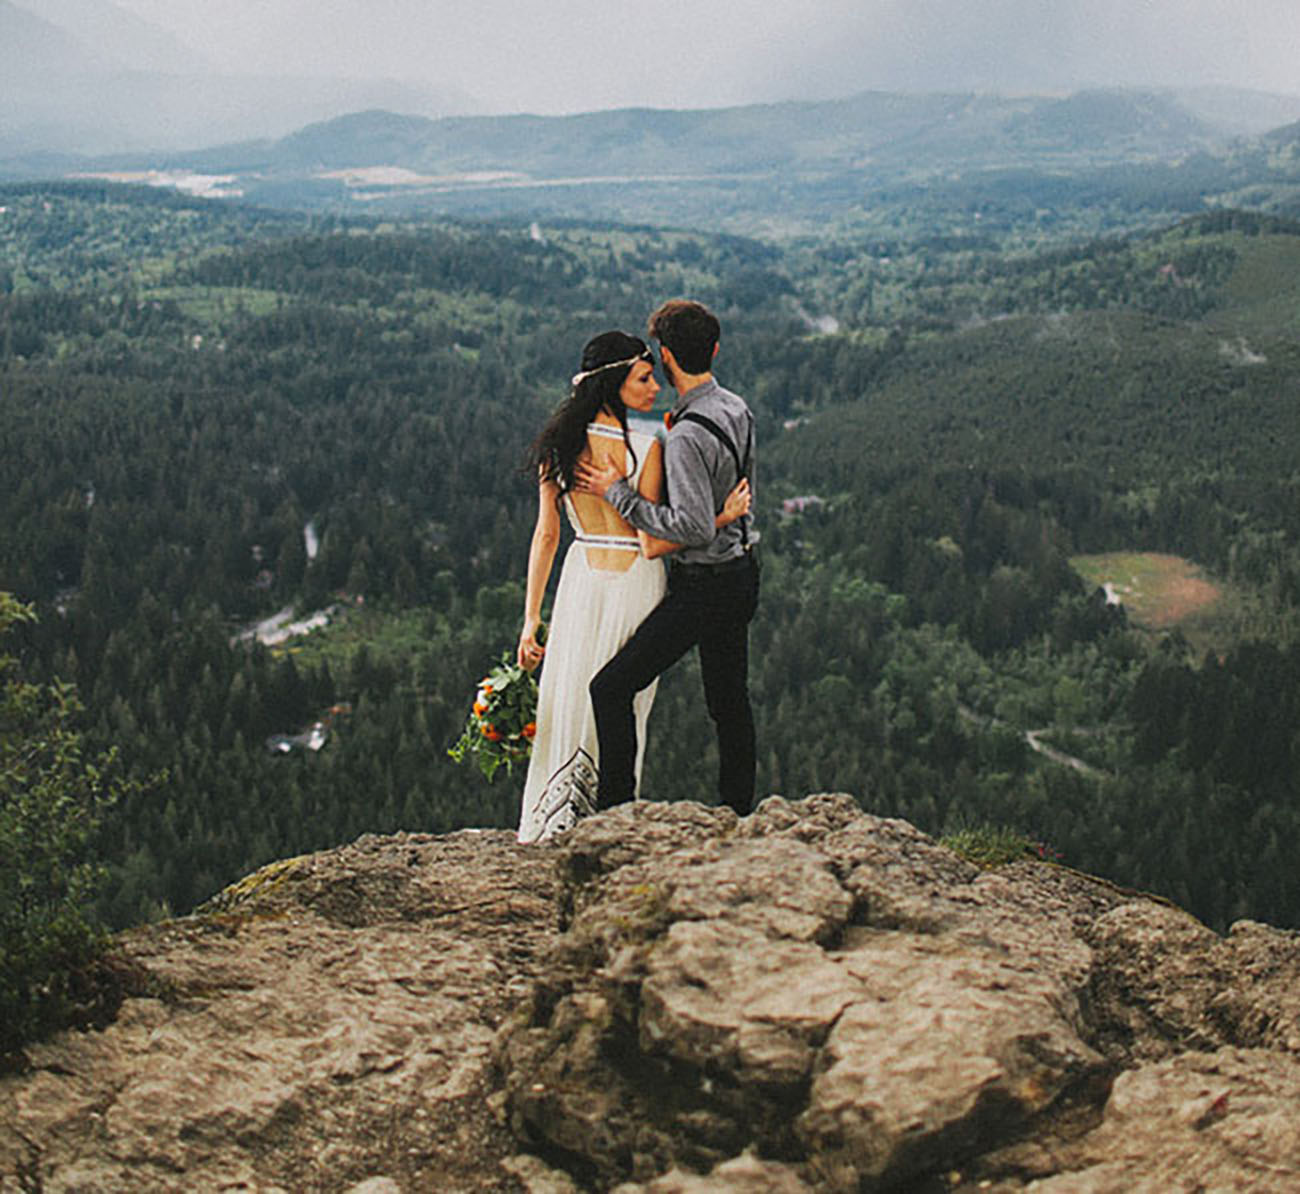 Rattlesnake Ledge North Bend, Washington is still such a stunner for us, hike the hill and exchange your vows - then send us your pics!